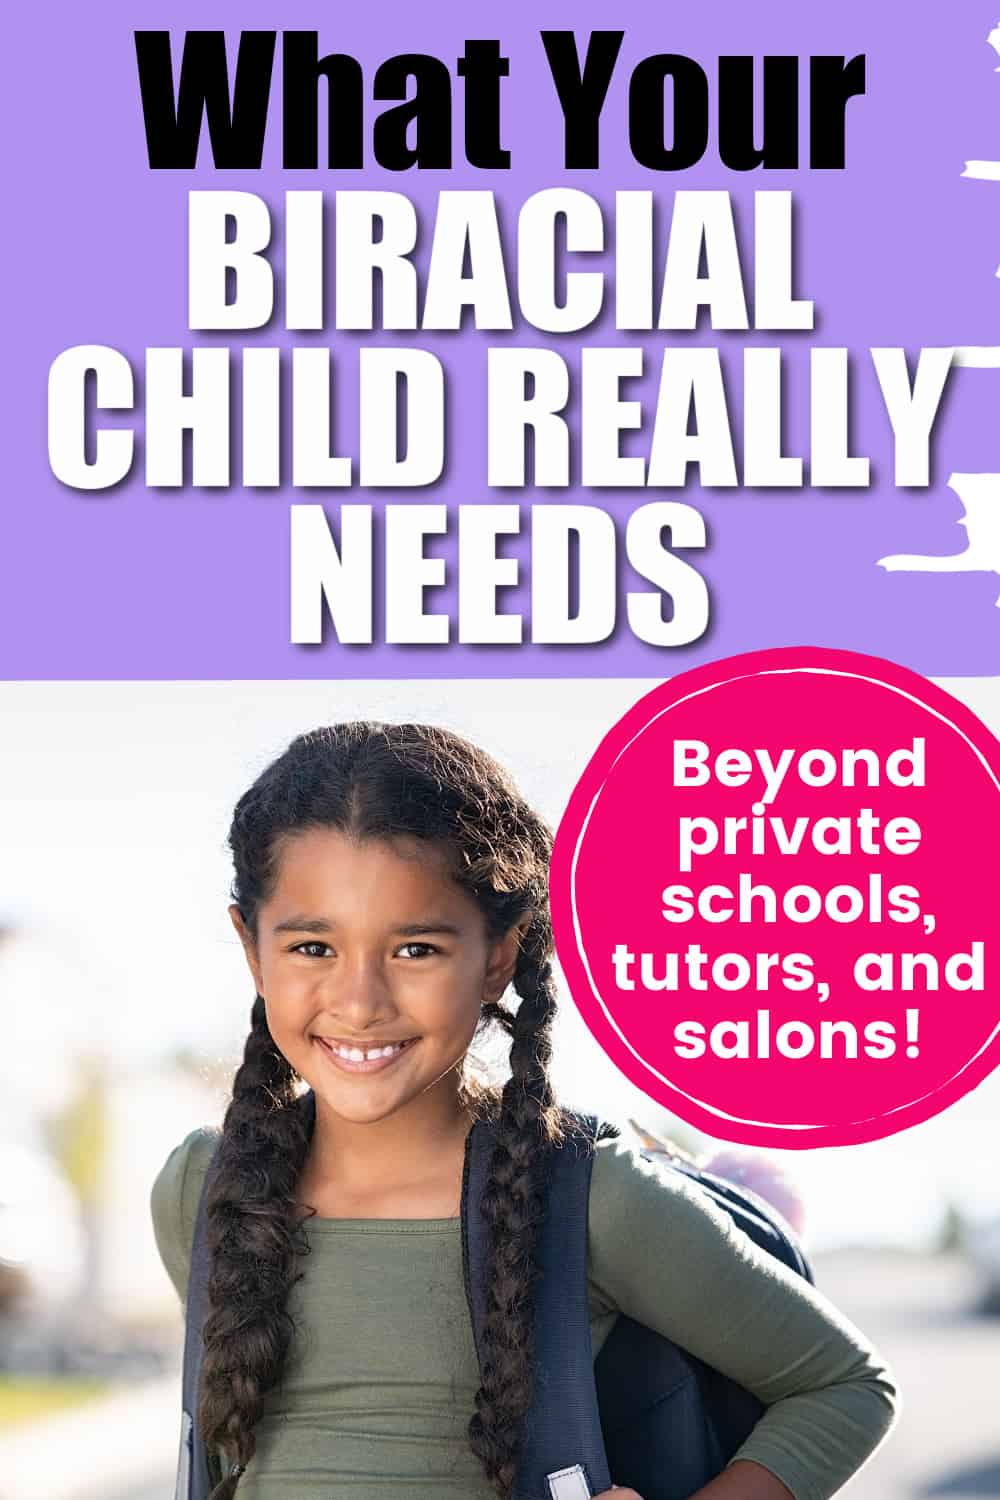 a biracial girl wearing a backpack smiling with text overlay that says what your biracial child really needs (beyond private schools, tutors, and salons)